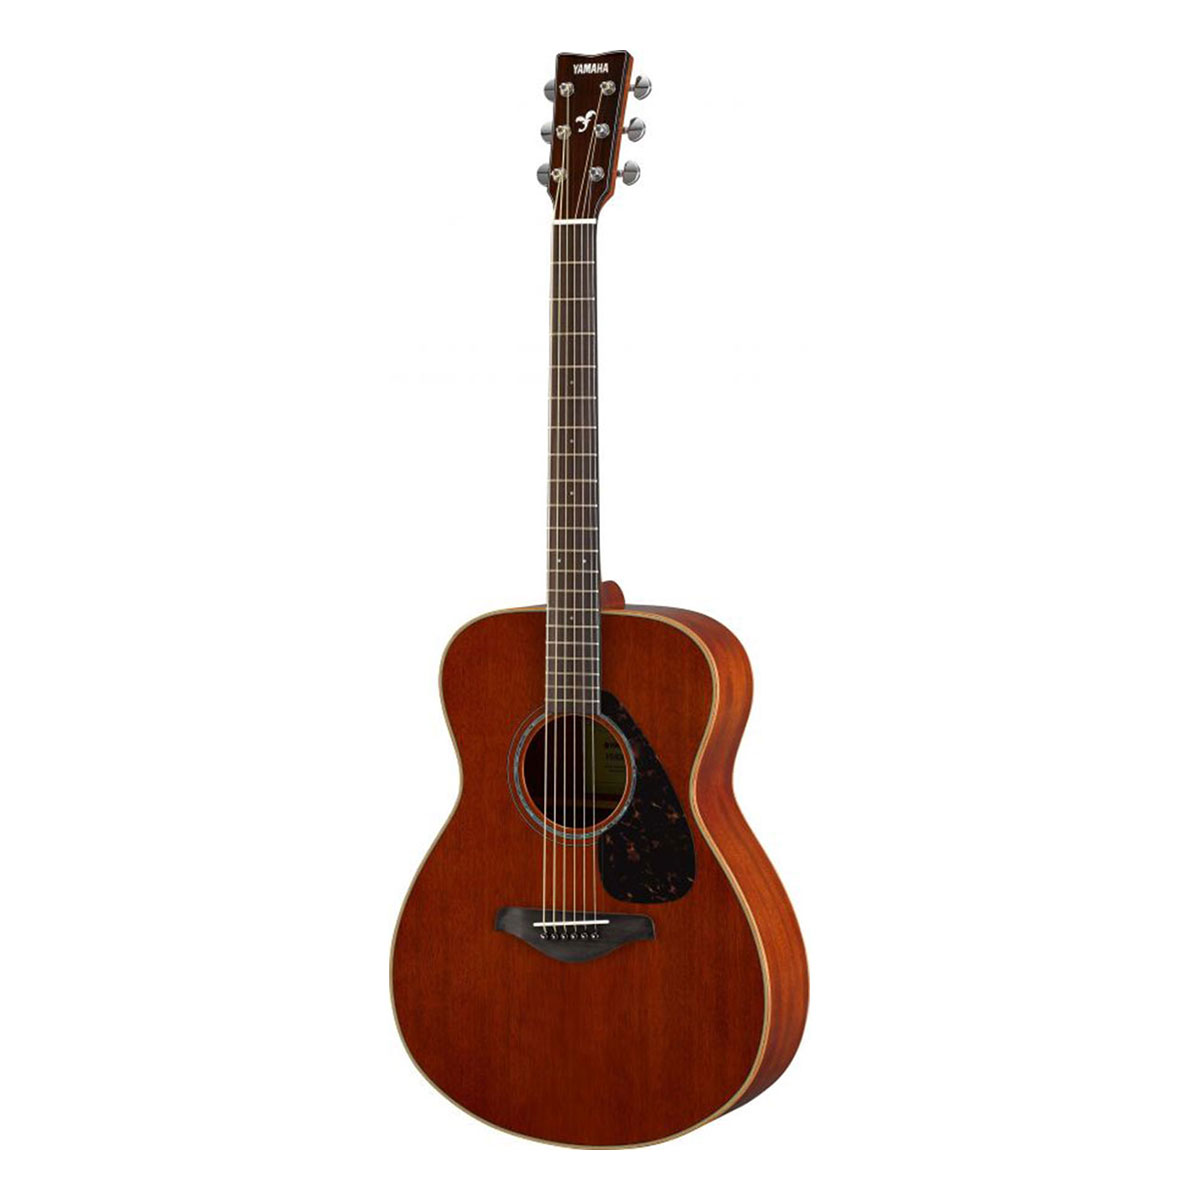 Yamaha - GFS850NT natural - guitare folk T